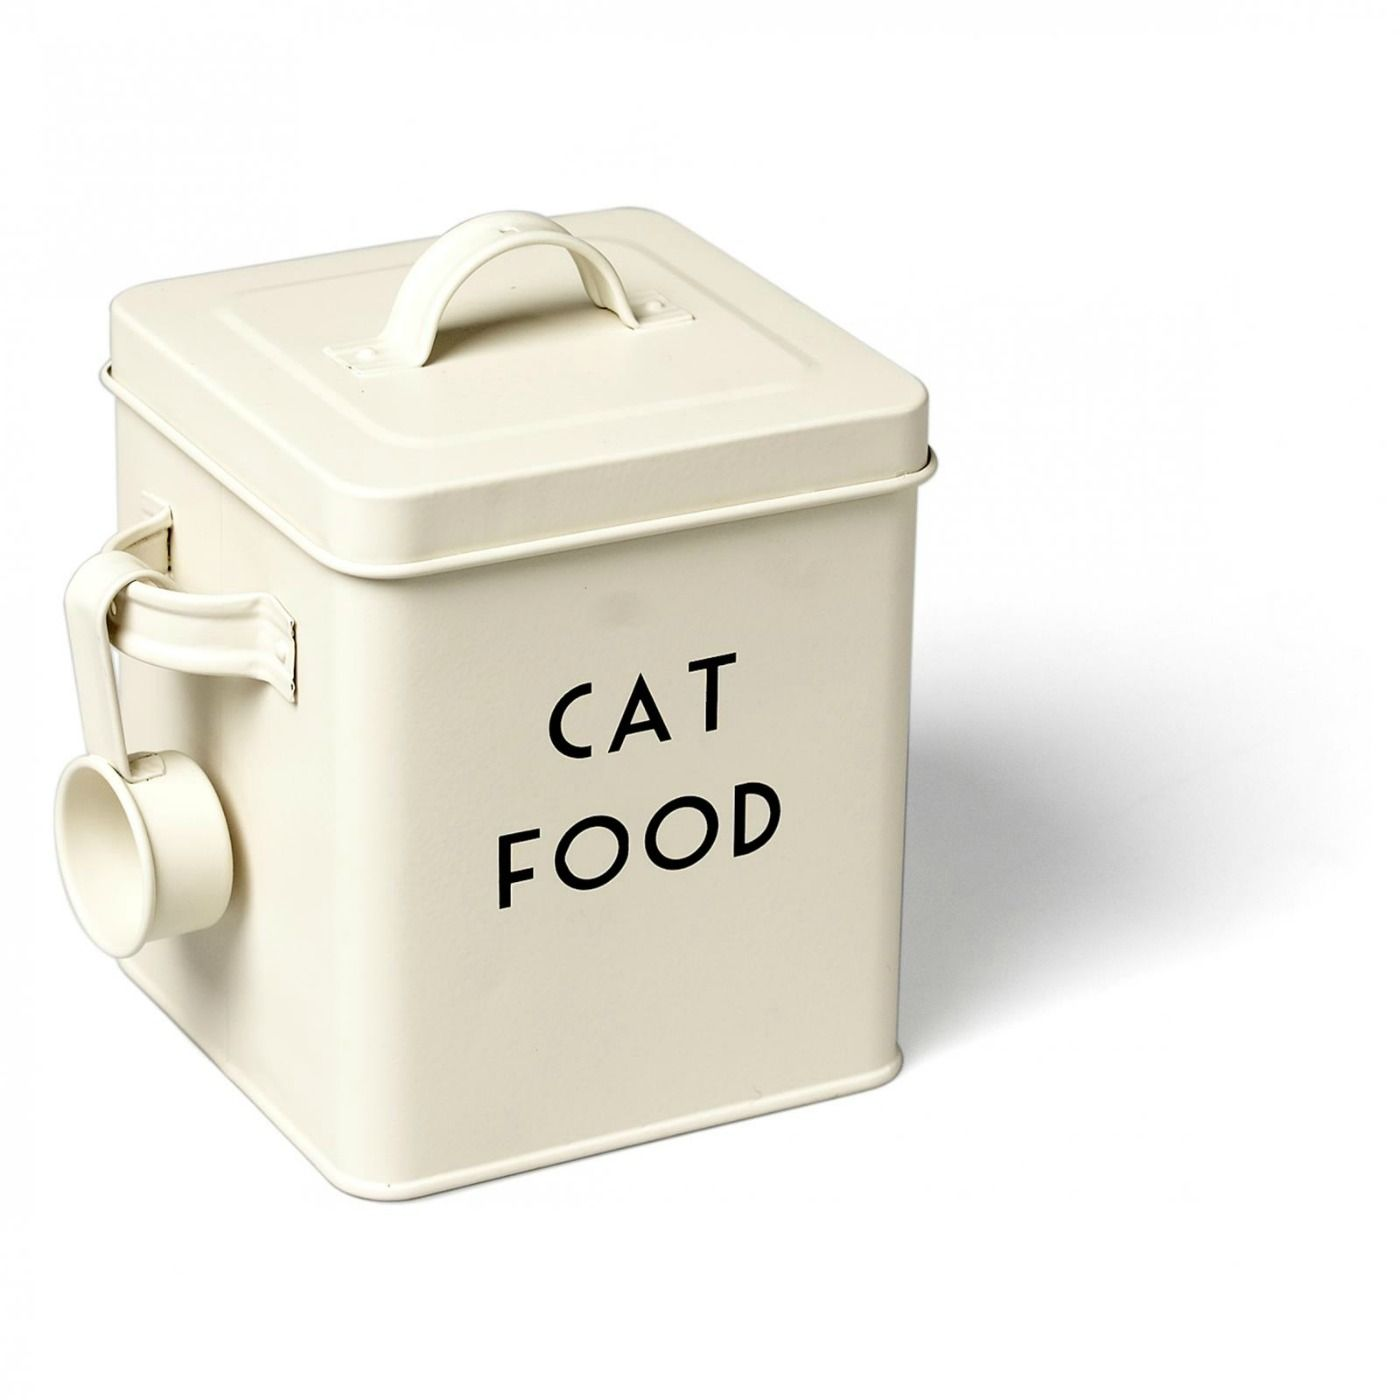 Deco Style Cream Cat Food Container With Scoop Dog Food Container